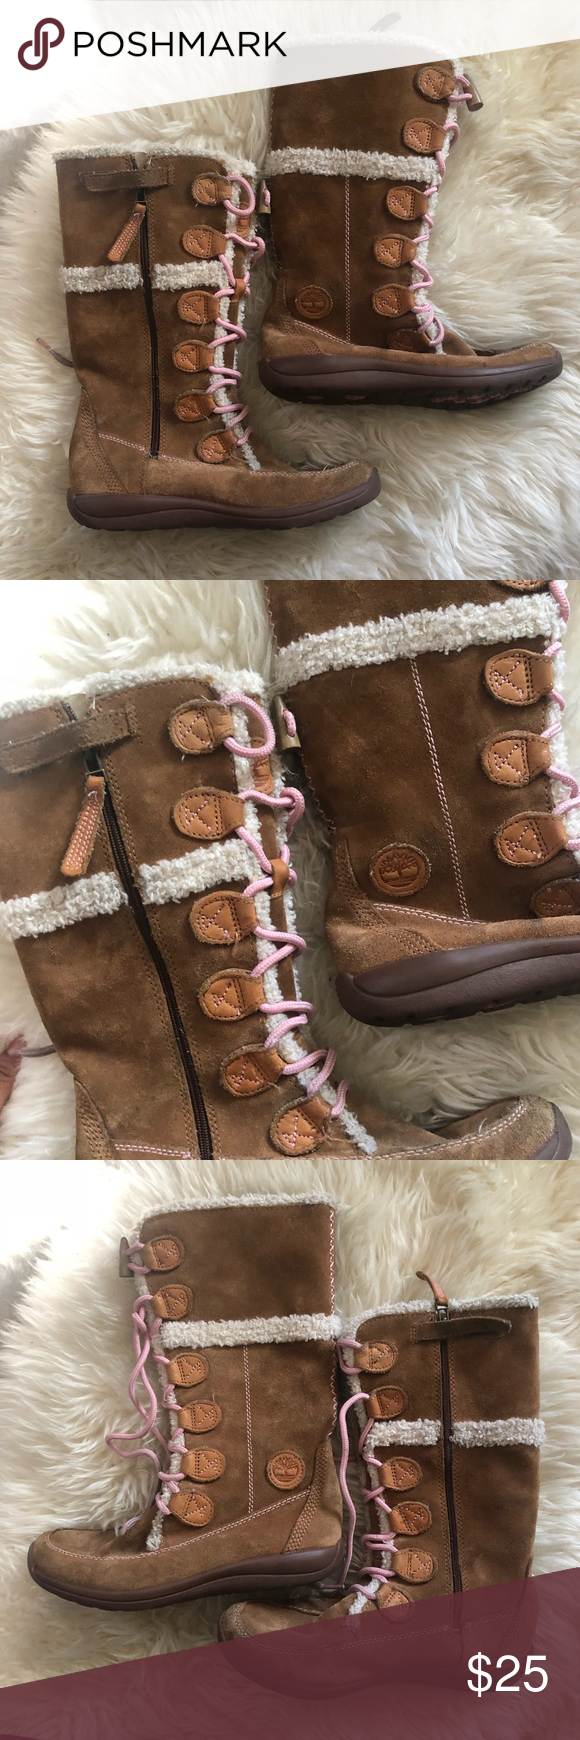 eea4a24046b9e Timberland Winter Snow Boots Girls size 4 Timberland snow boots in size 4  with no holes or rips and comes from a smoke free home.